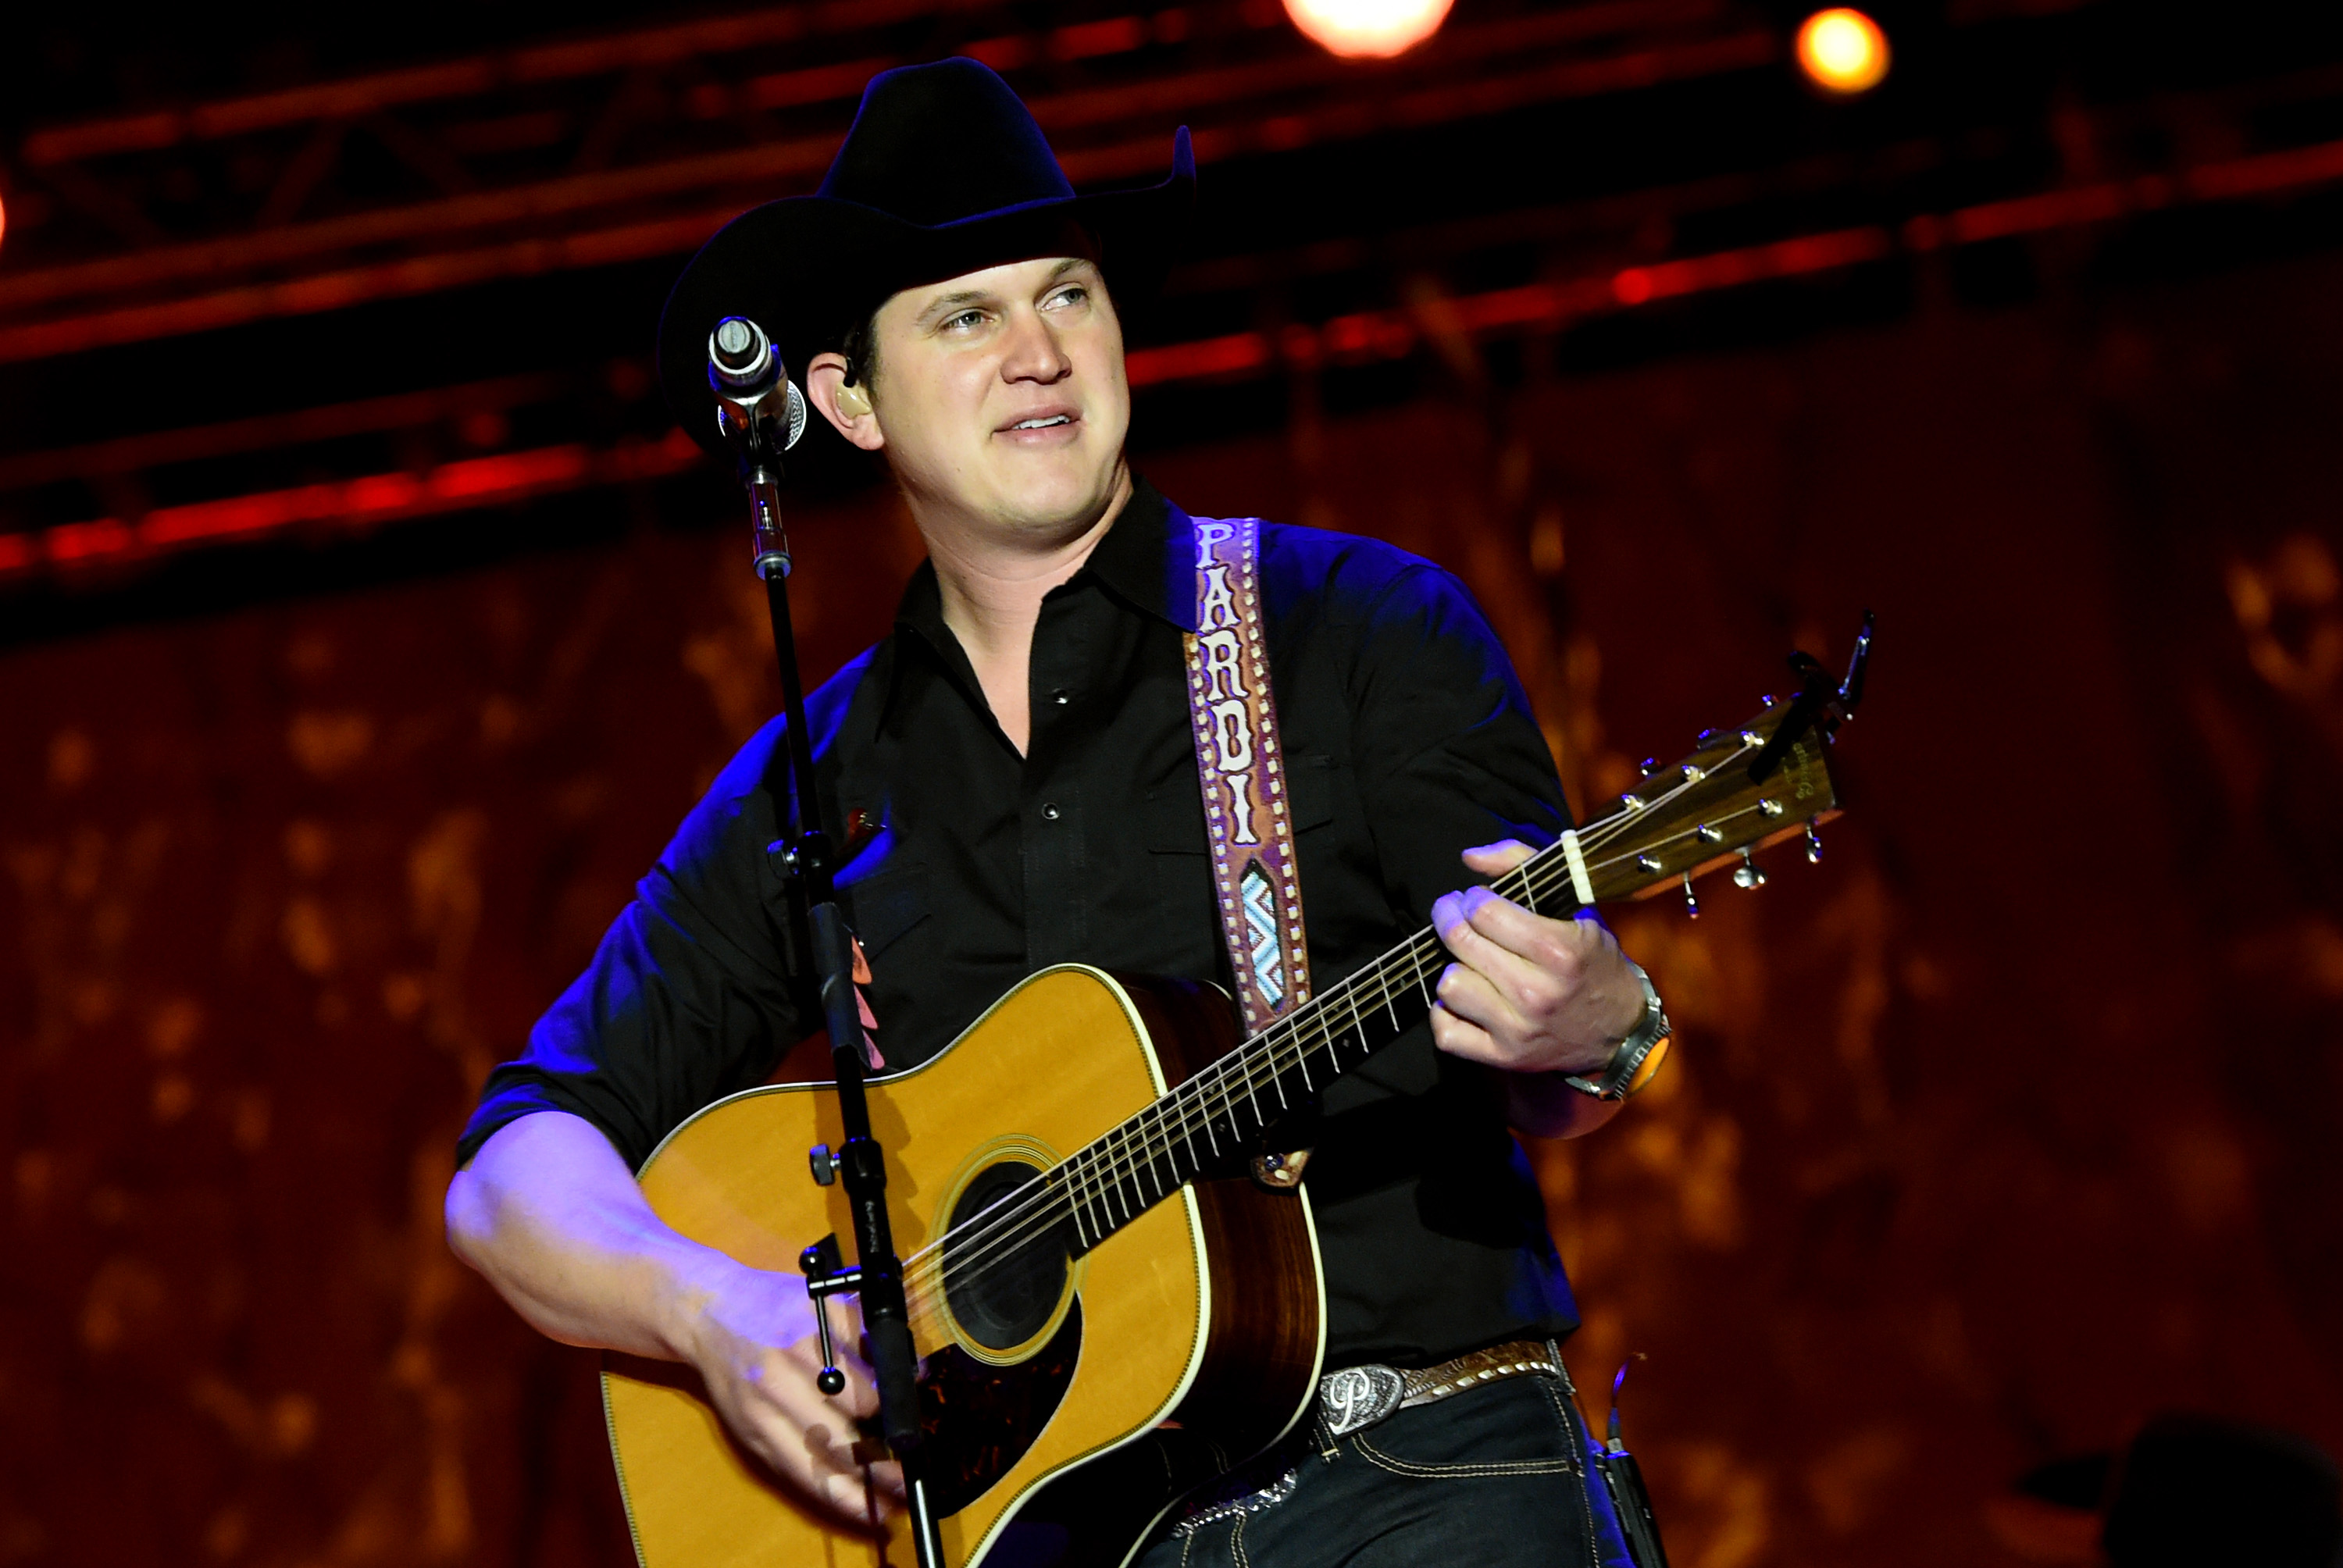 Jon Pardi; Photo by Rick Diamond/Getty Images for CRS